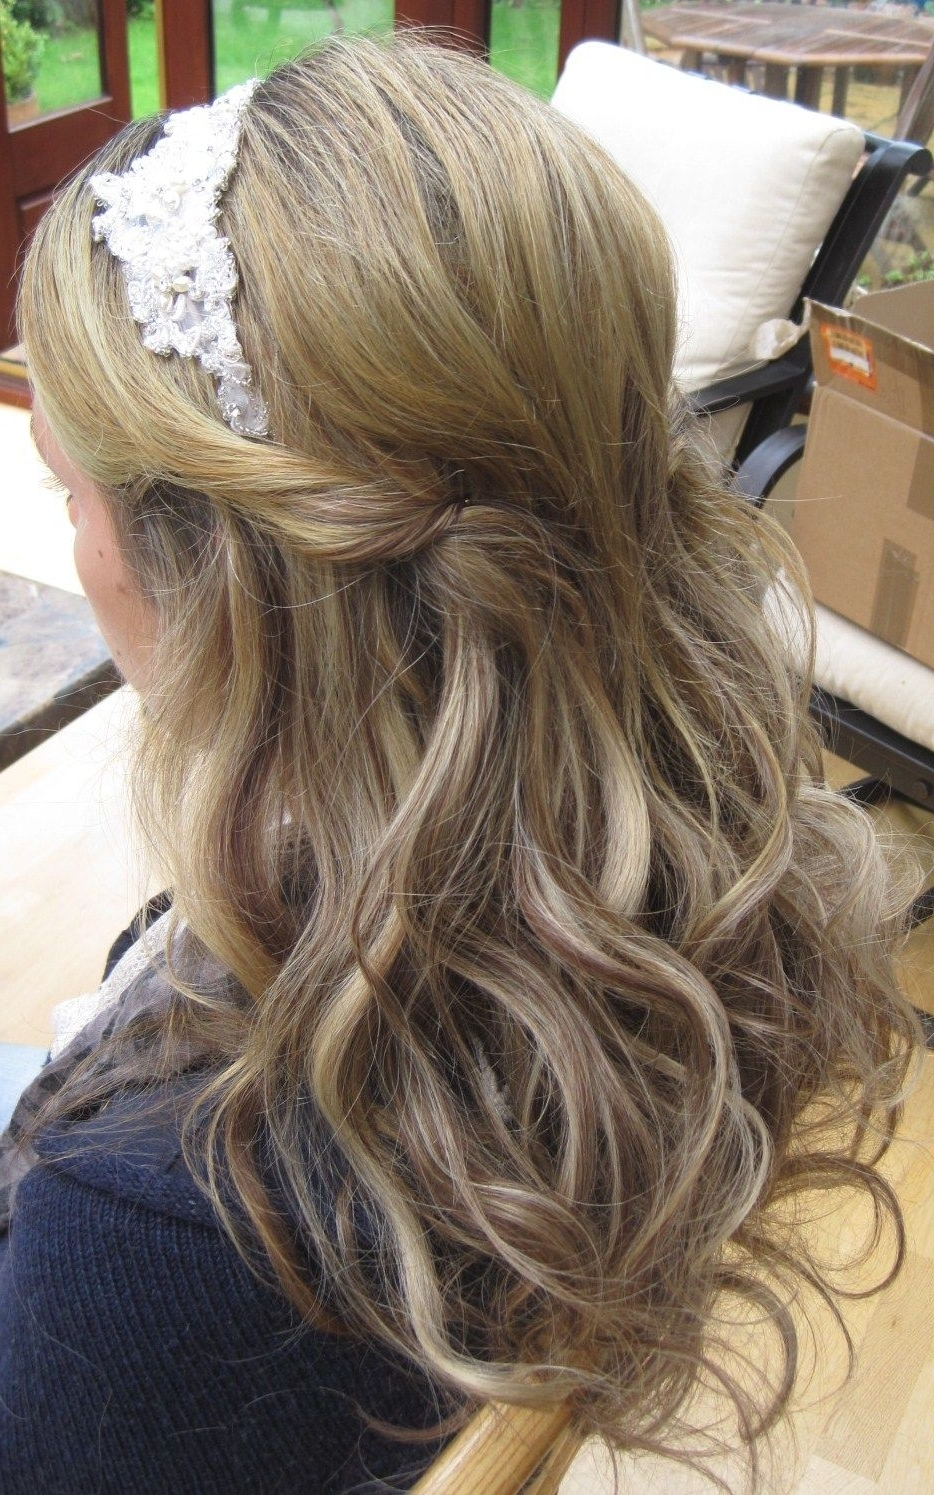 Fashionable Half Up Half Down Straight Wedding Hairstyles For Half Up Downdding Styles Impressive Hairstyles Pictures For Mother (View 5 of 15)